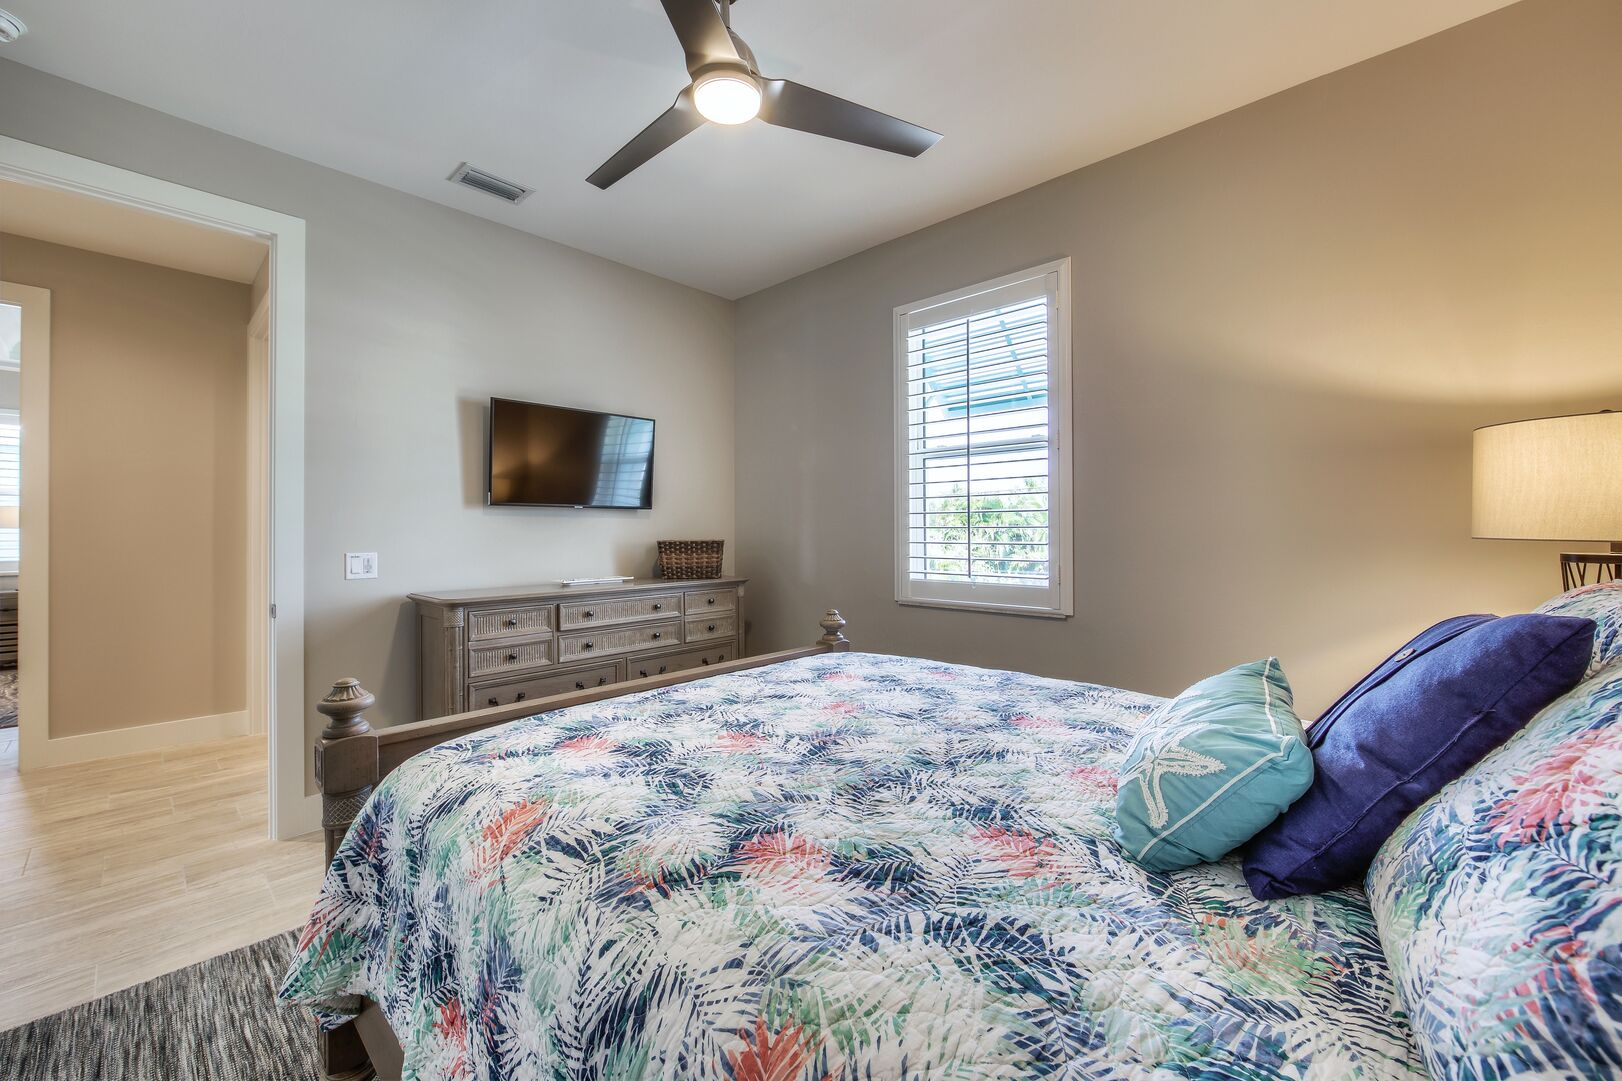 Bedroom with TV and Dresser at Tidewater